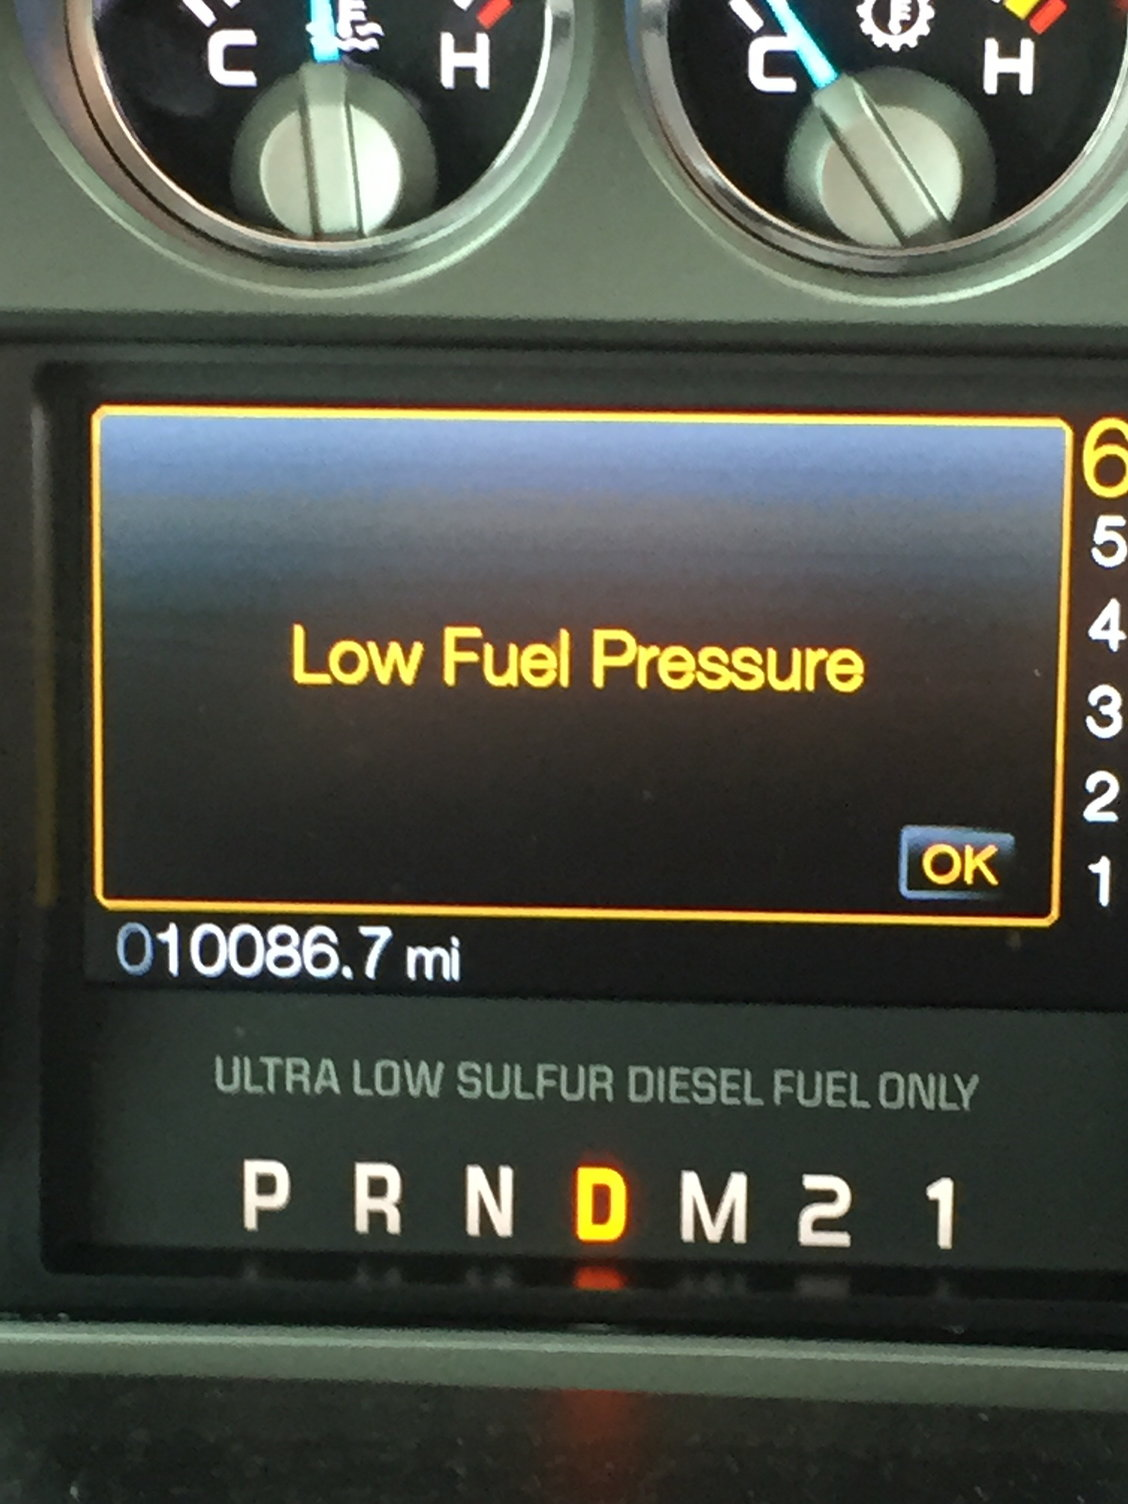 hight resolution of i assume it s the fuel system starving calling the dealer now but going to continue pressing on cautiously until the truck tells me otherwise